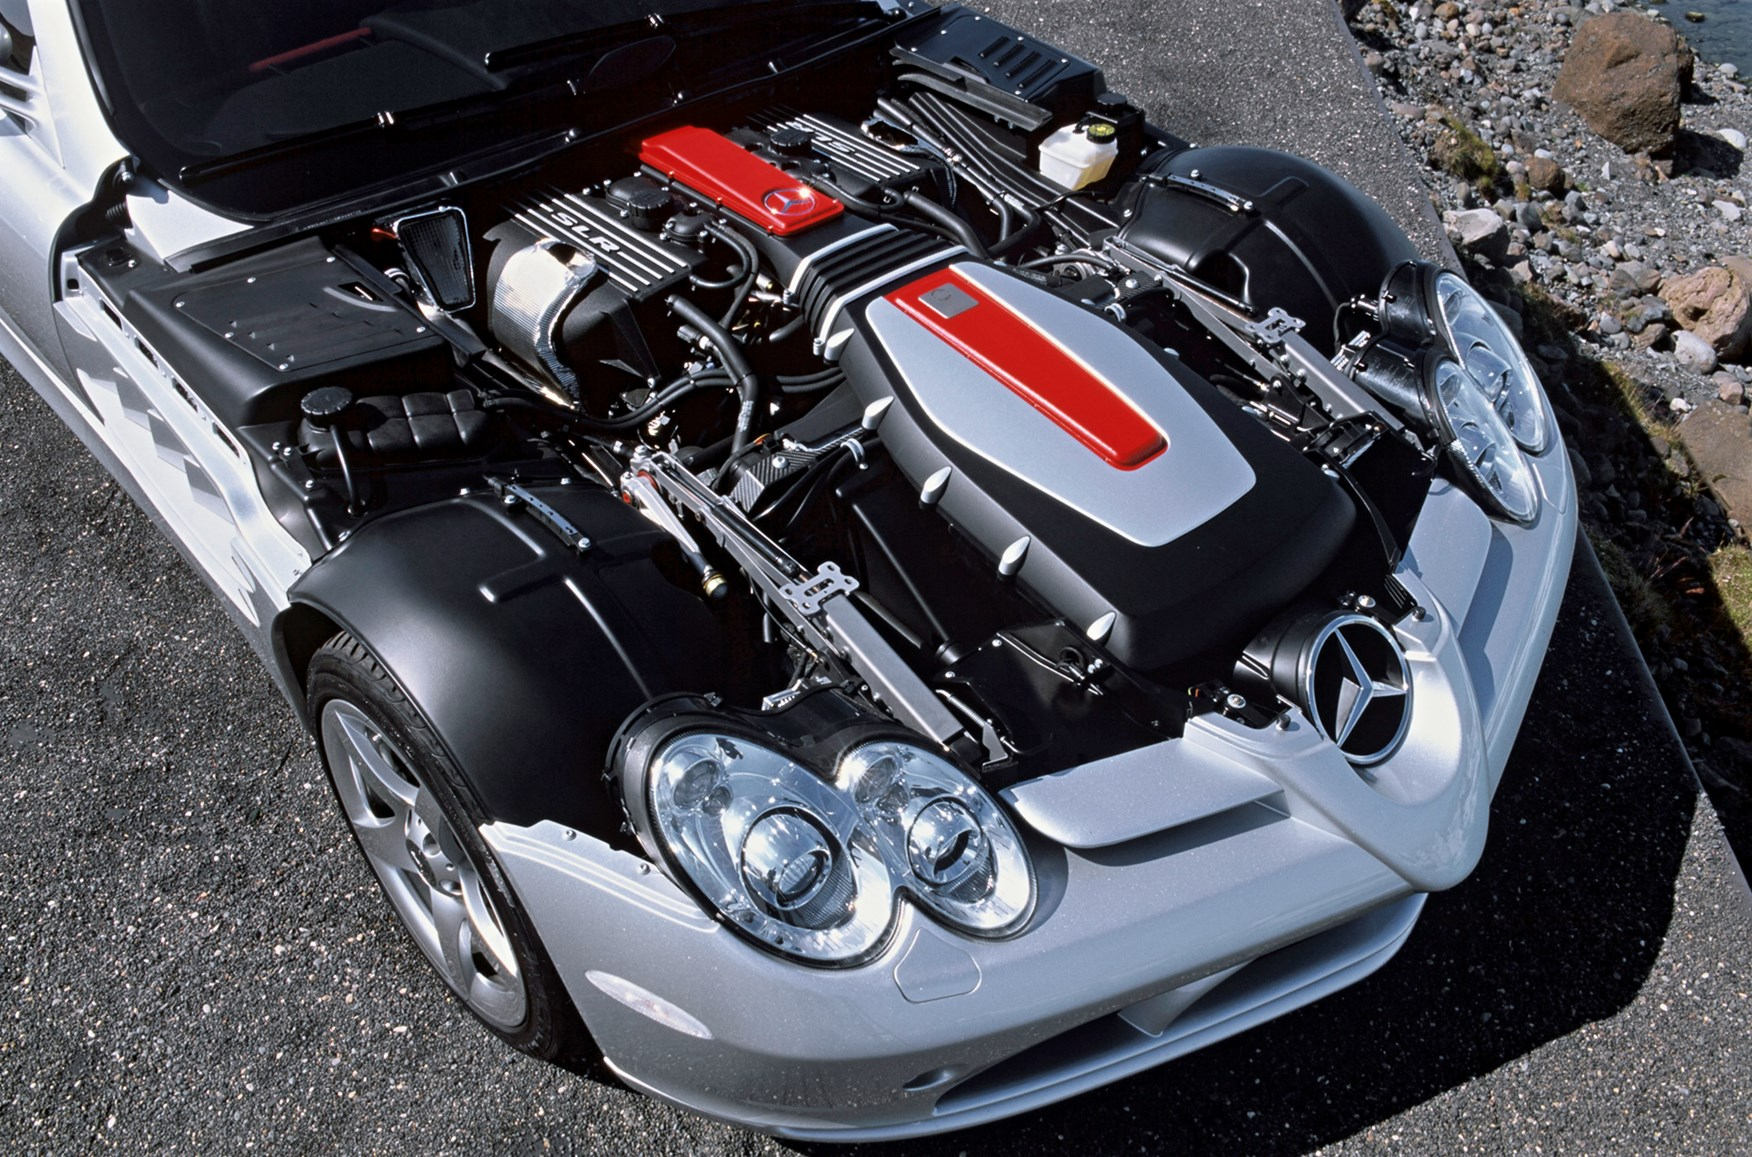 Mercedes benz slr mclaren convertible review 2003 for Motor mercedes benz